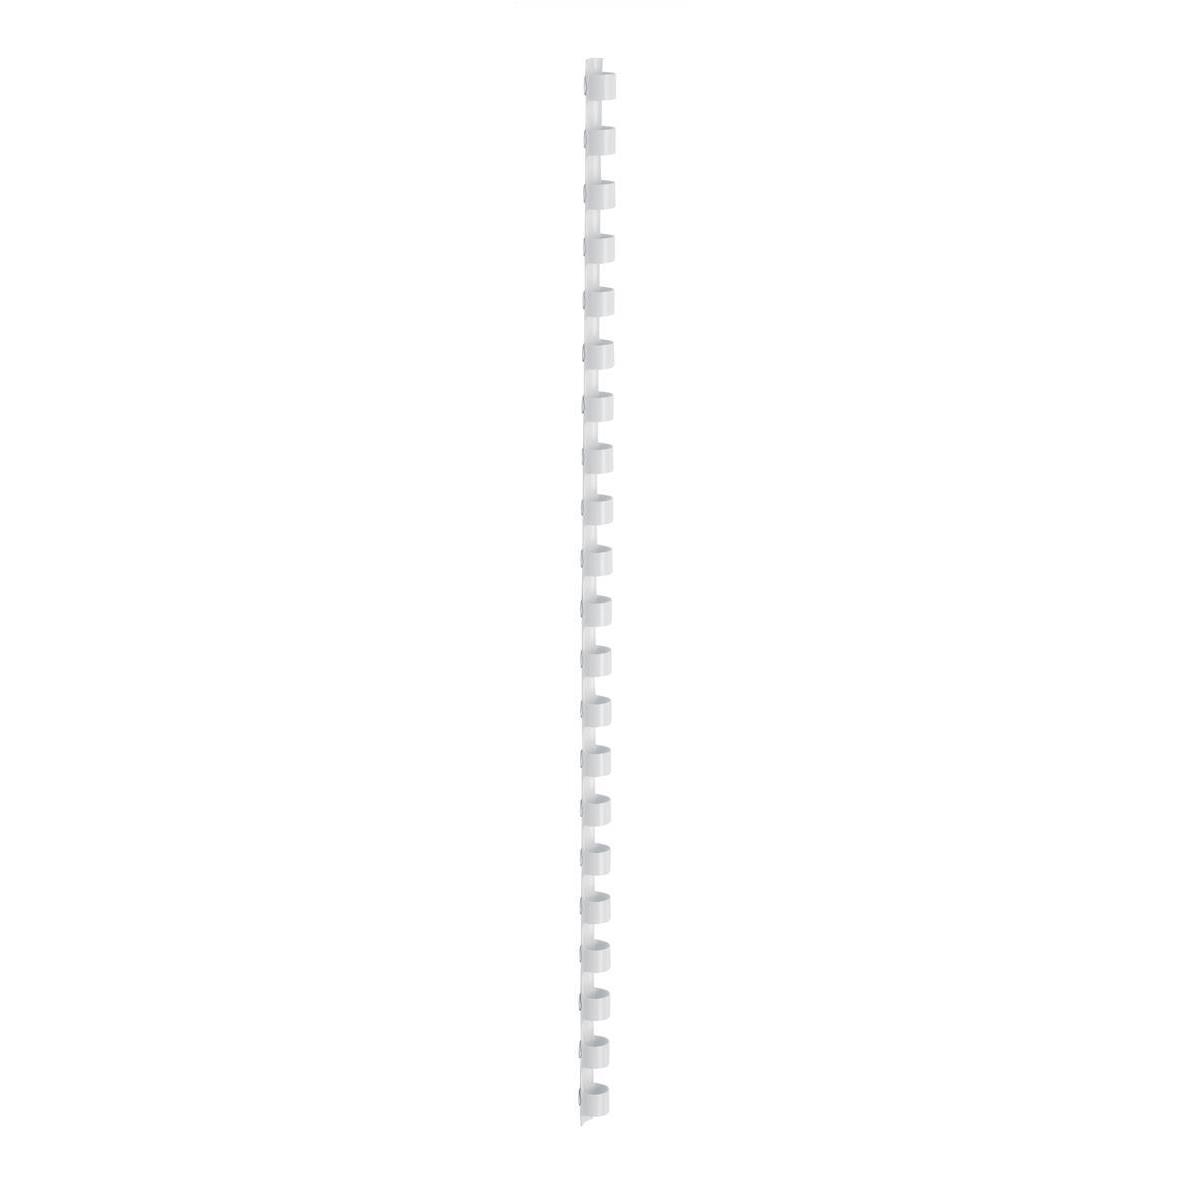 Binding Combs 5 Star Office Binding Combs Plastic 21 Ring 45 Sheets A4 8mm White Pack 100